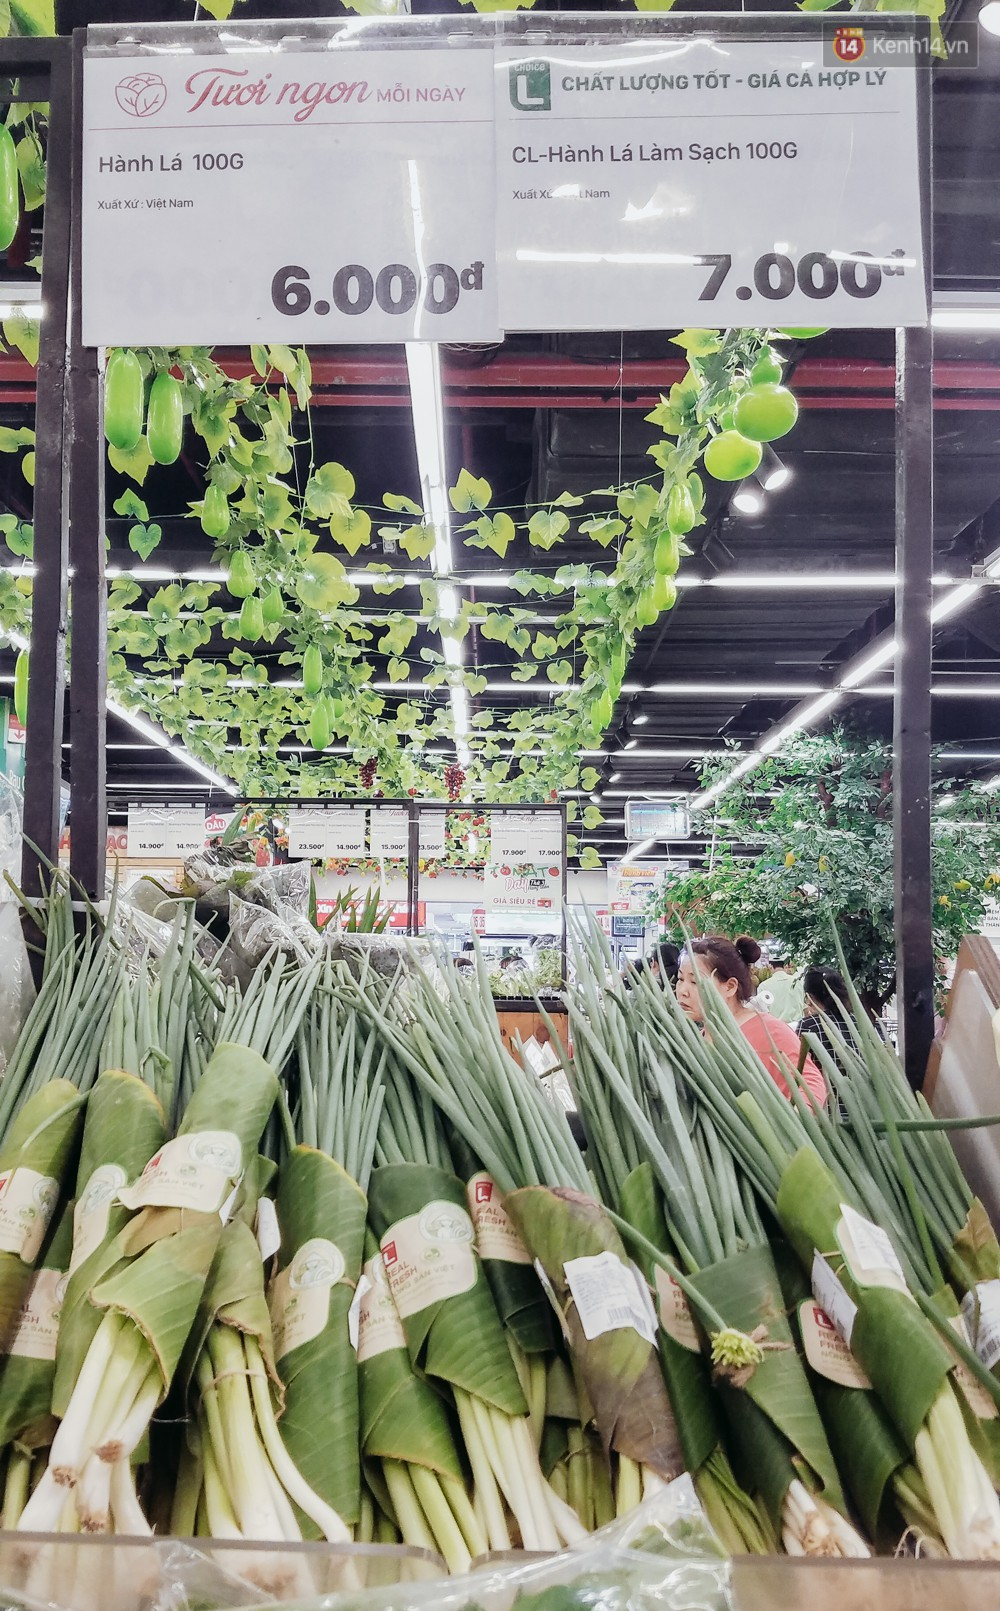 A large Saigon supermarket used banana leaves to wrap food, customers looked at their eyes! - Photo 4.